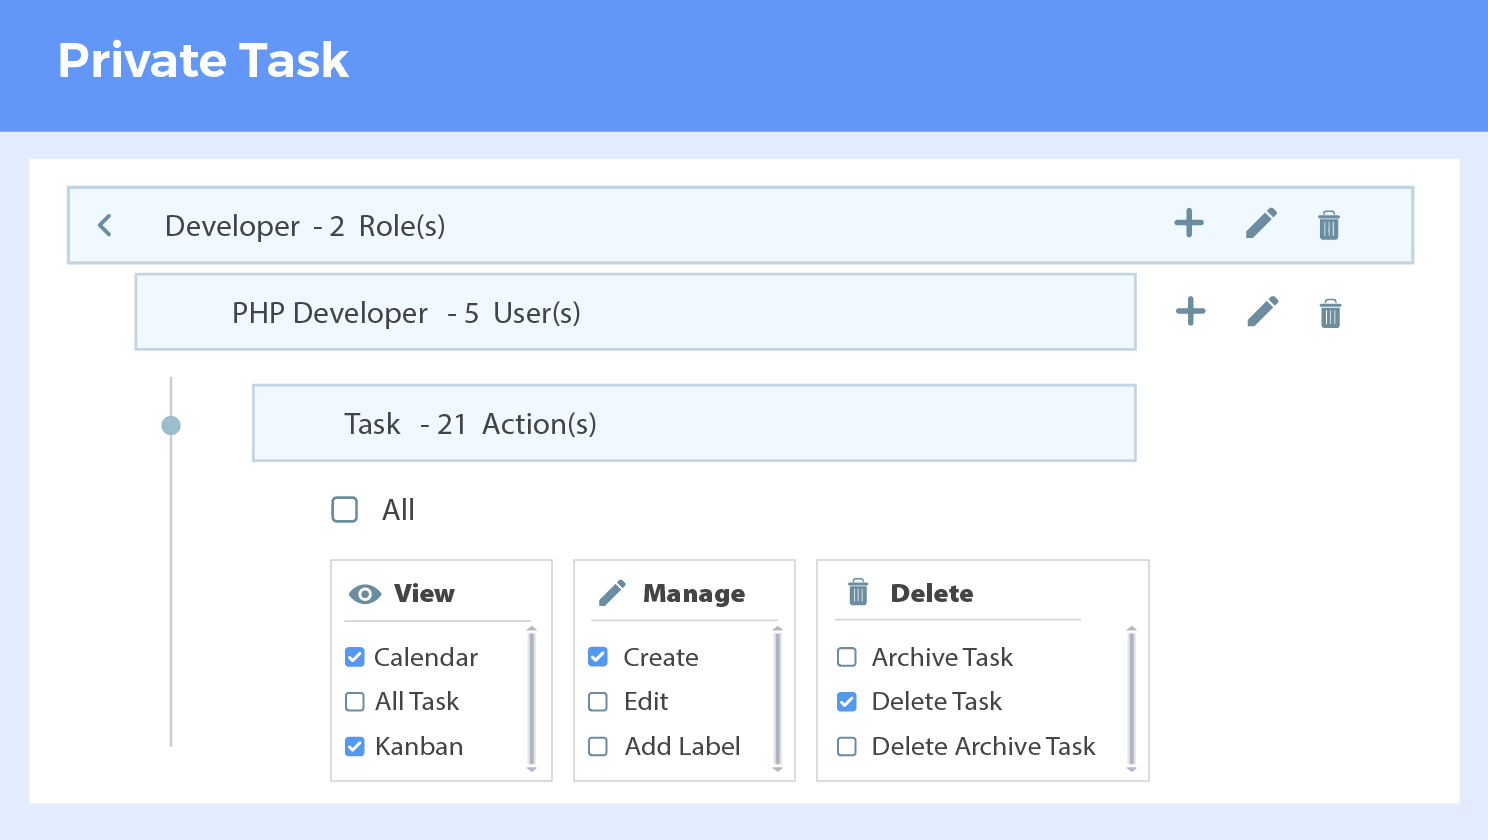 Deselect View ALL Tasks to ensure users see their own tasks only